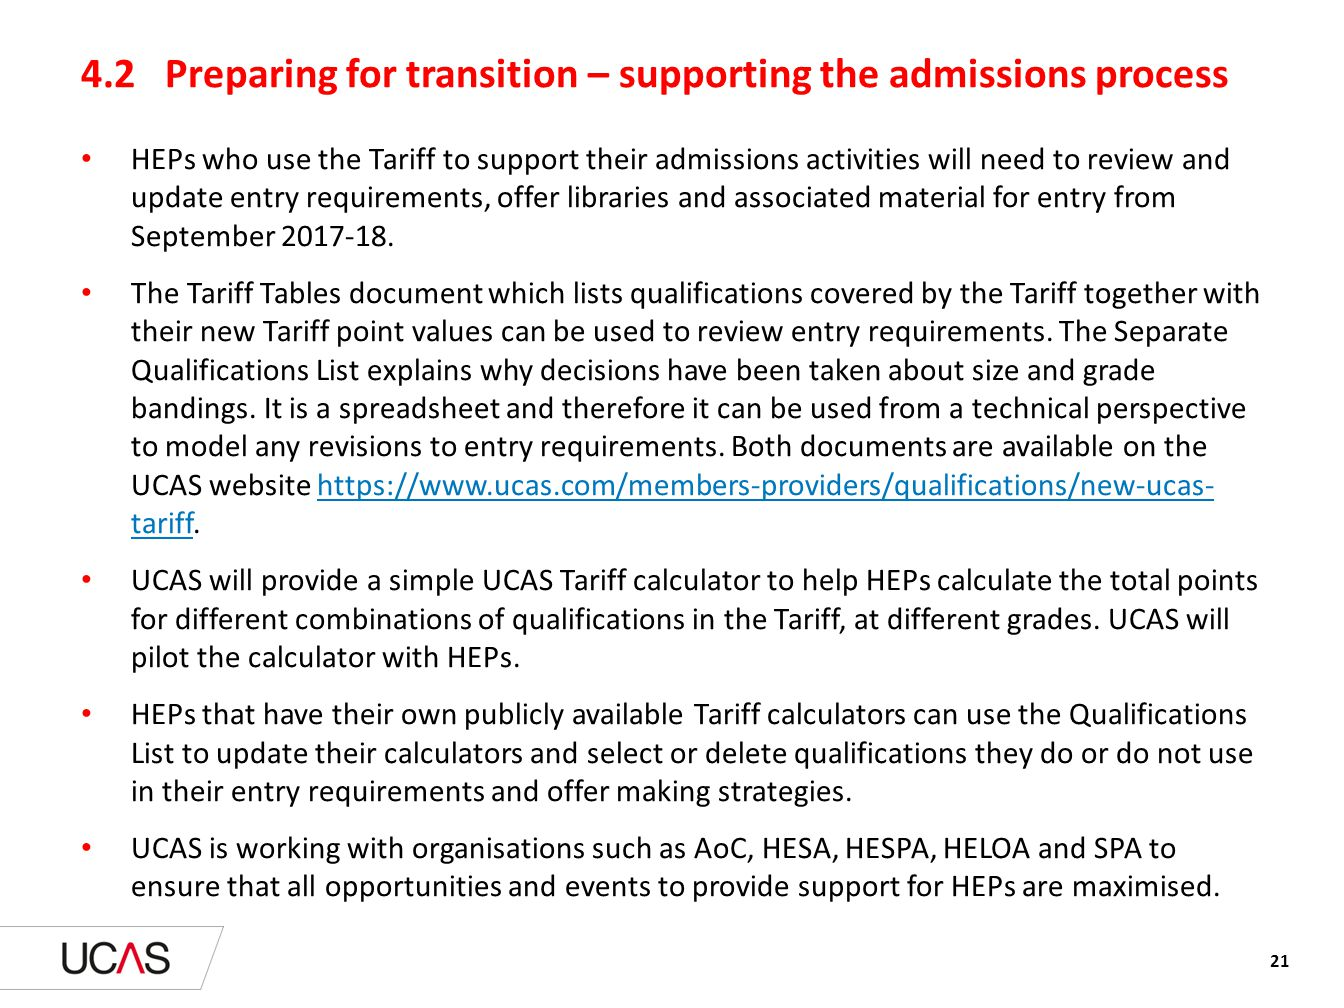 4.2 Preparing for transition – supporting the admissions process